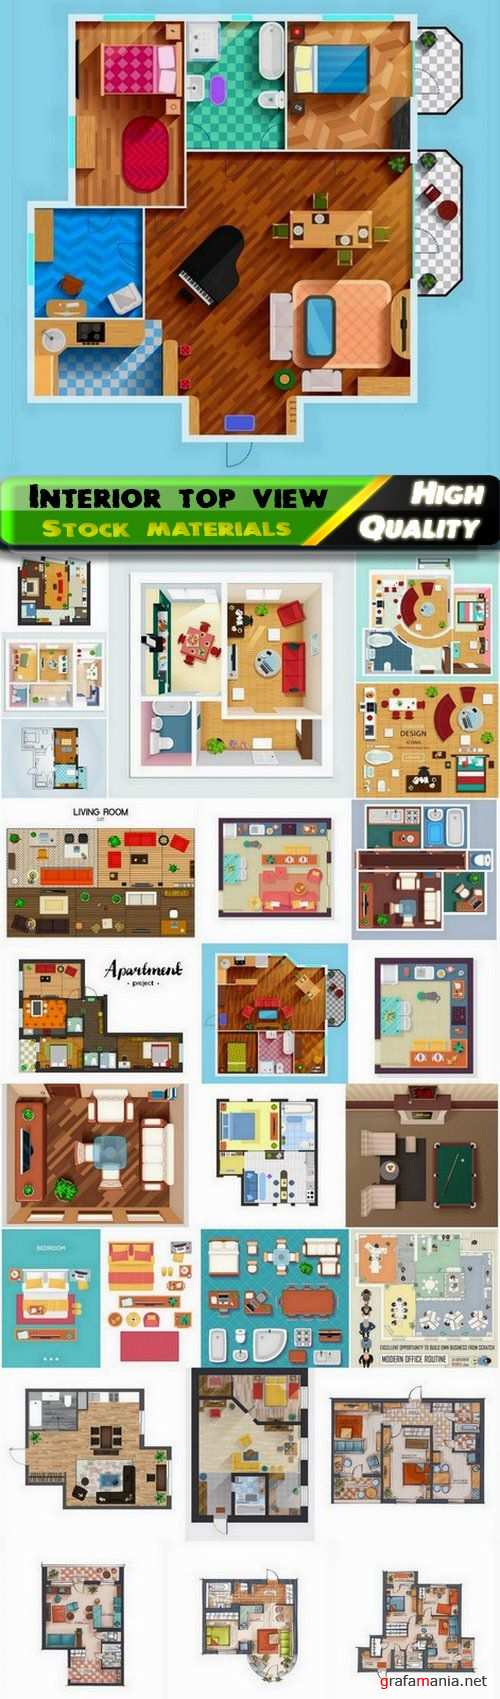 Home interior and apartment with furniture top view 25 Eps